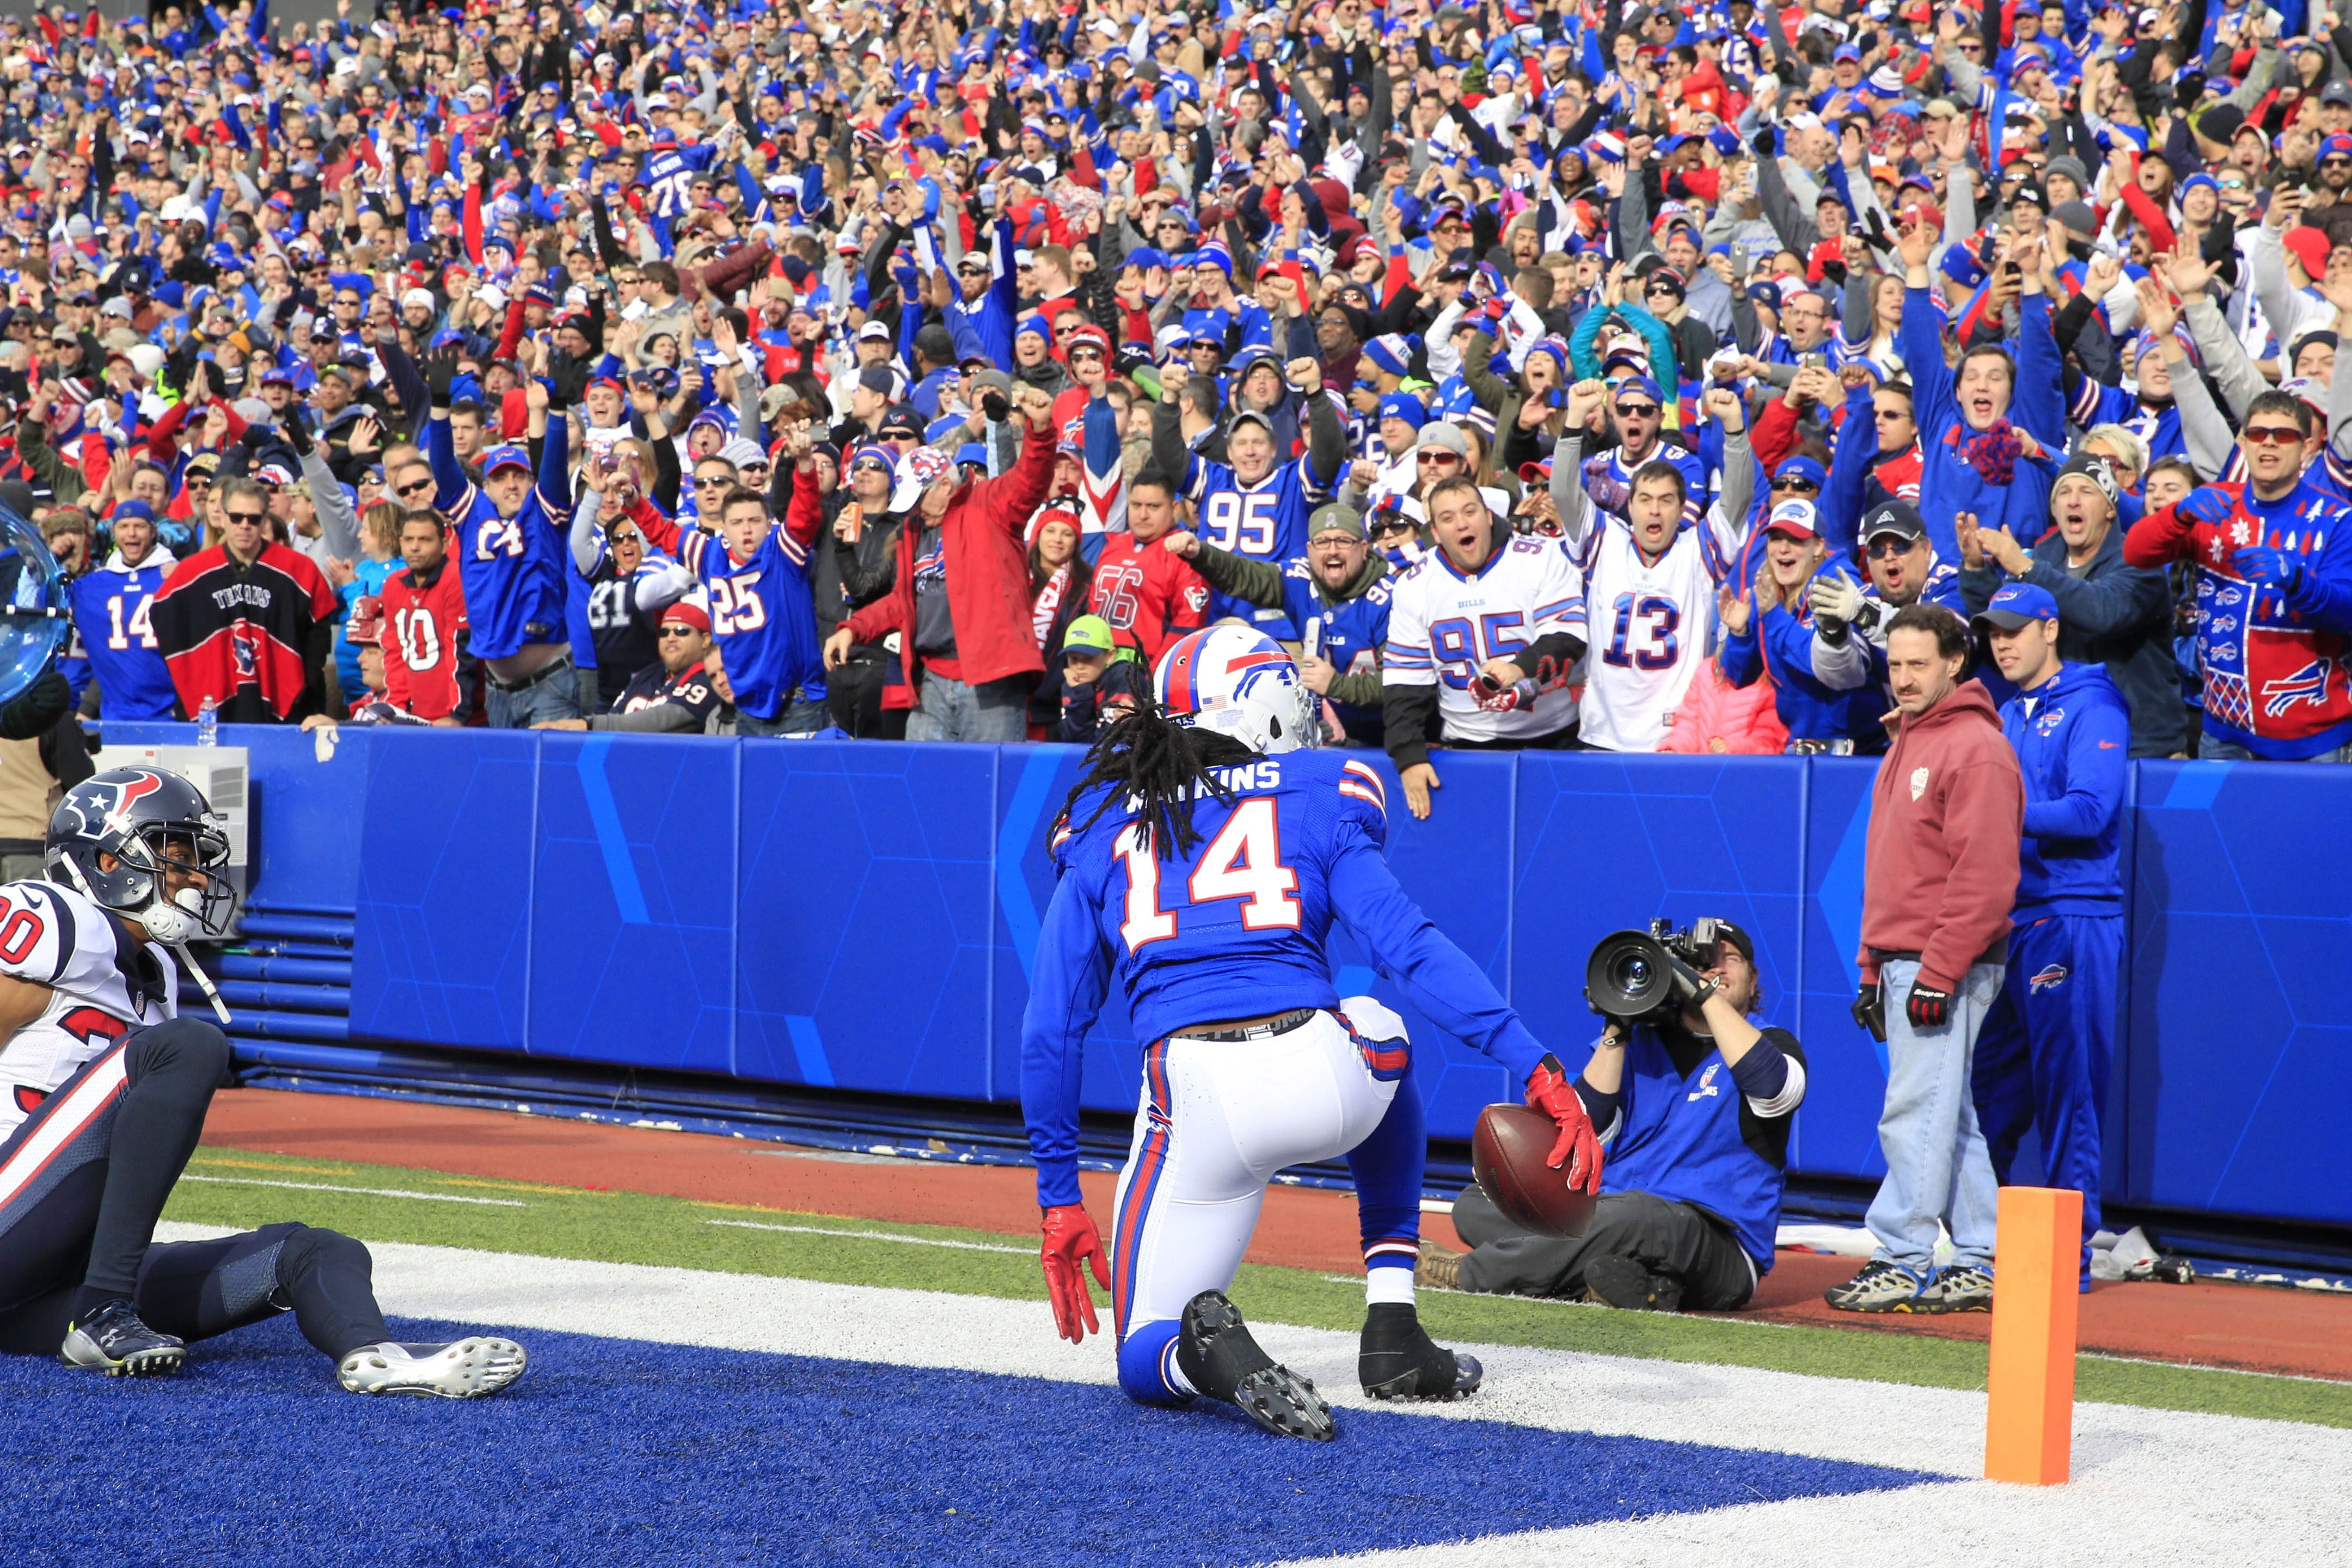 Good behavior by enthusiastic Bills fans is the norm, not the exception, Bills president Russ Brandon says.